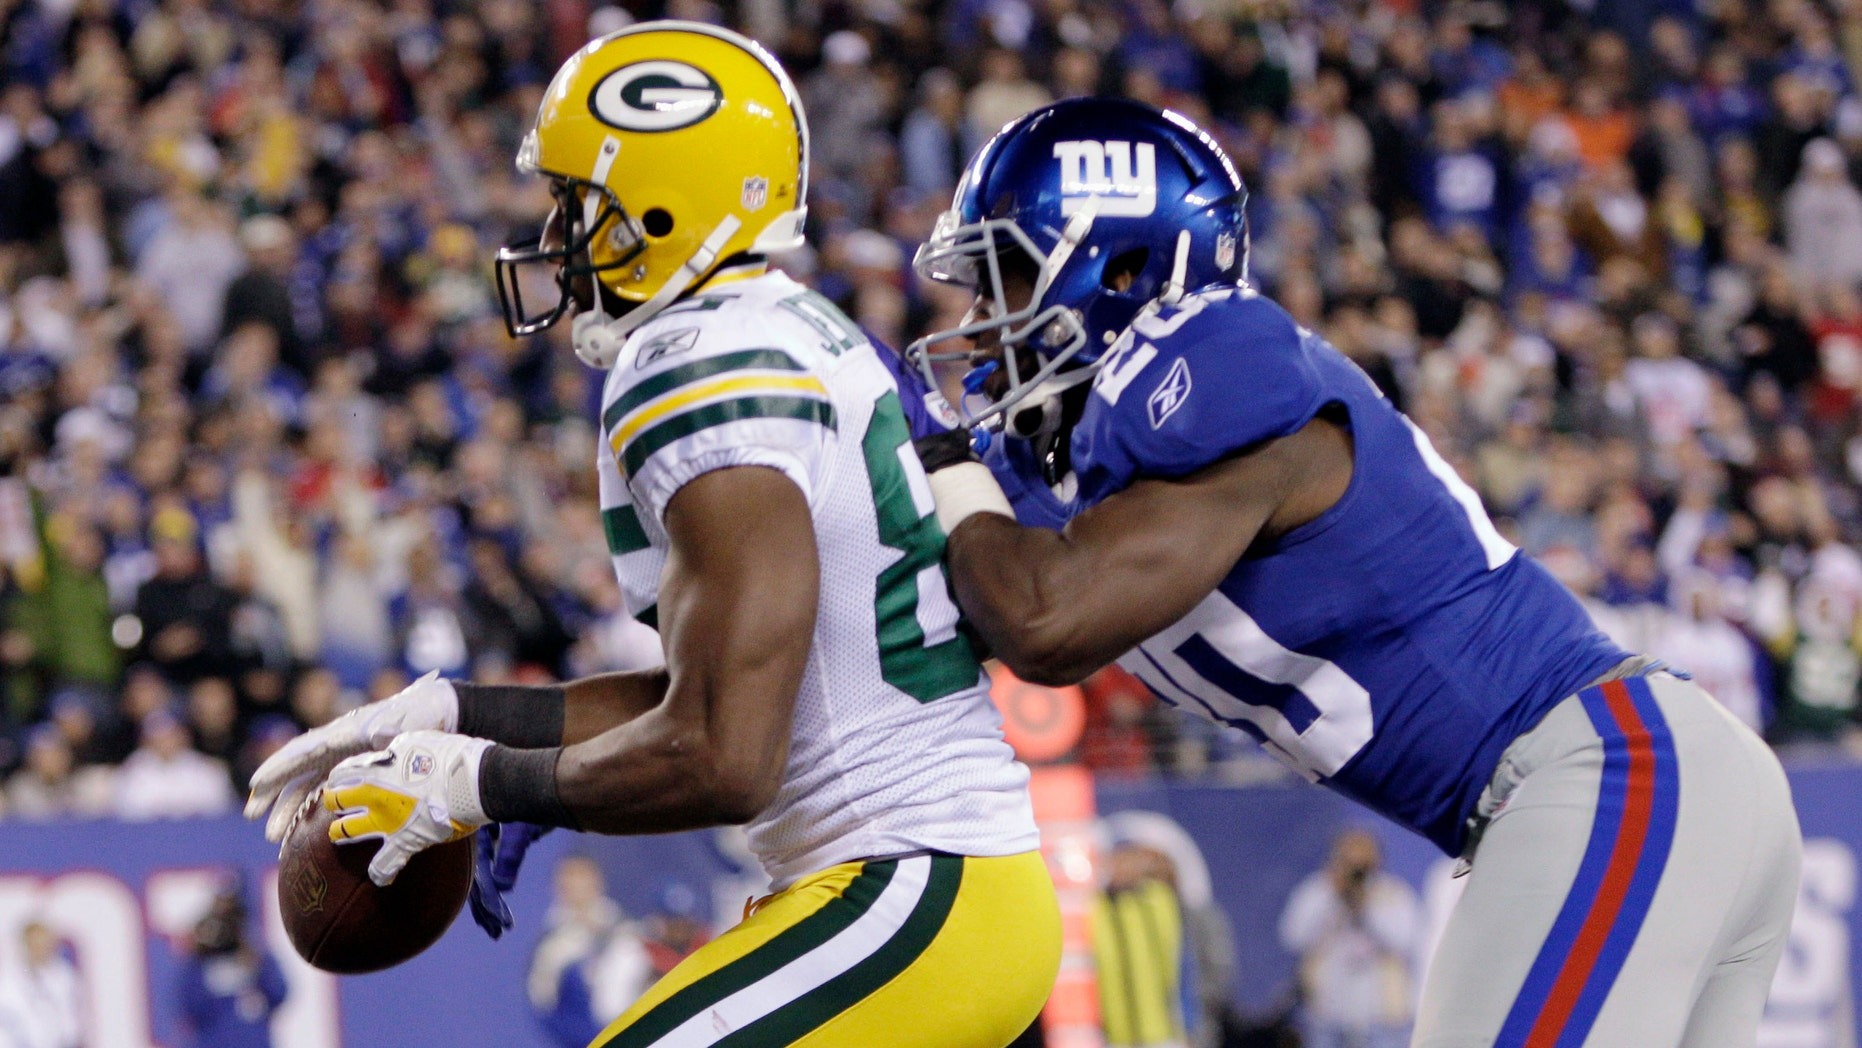 Green Bay Packers' Greg Jennings (85) catches a pass as New York Giants' Prince Amukamara (20) defends during the third quarter of an NFL football game Sunday, Dec. 4, 2011, in East Rutherford, N.J. The play was ruled a touchdown. (AP Photo/Kathy Willens)